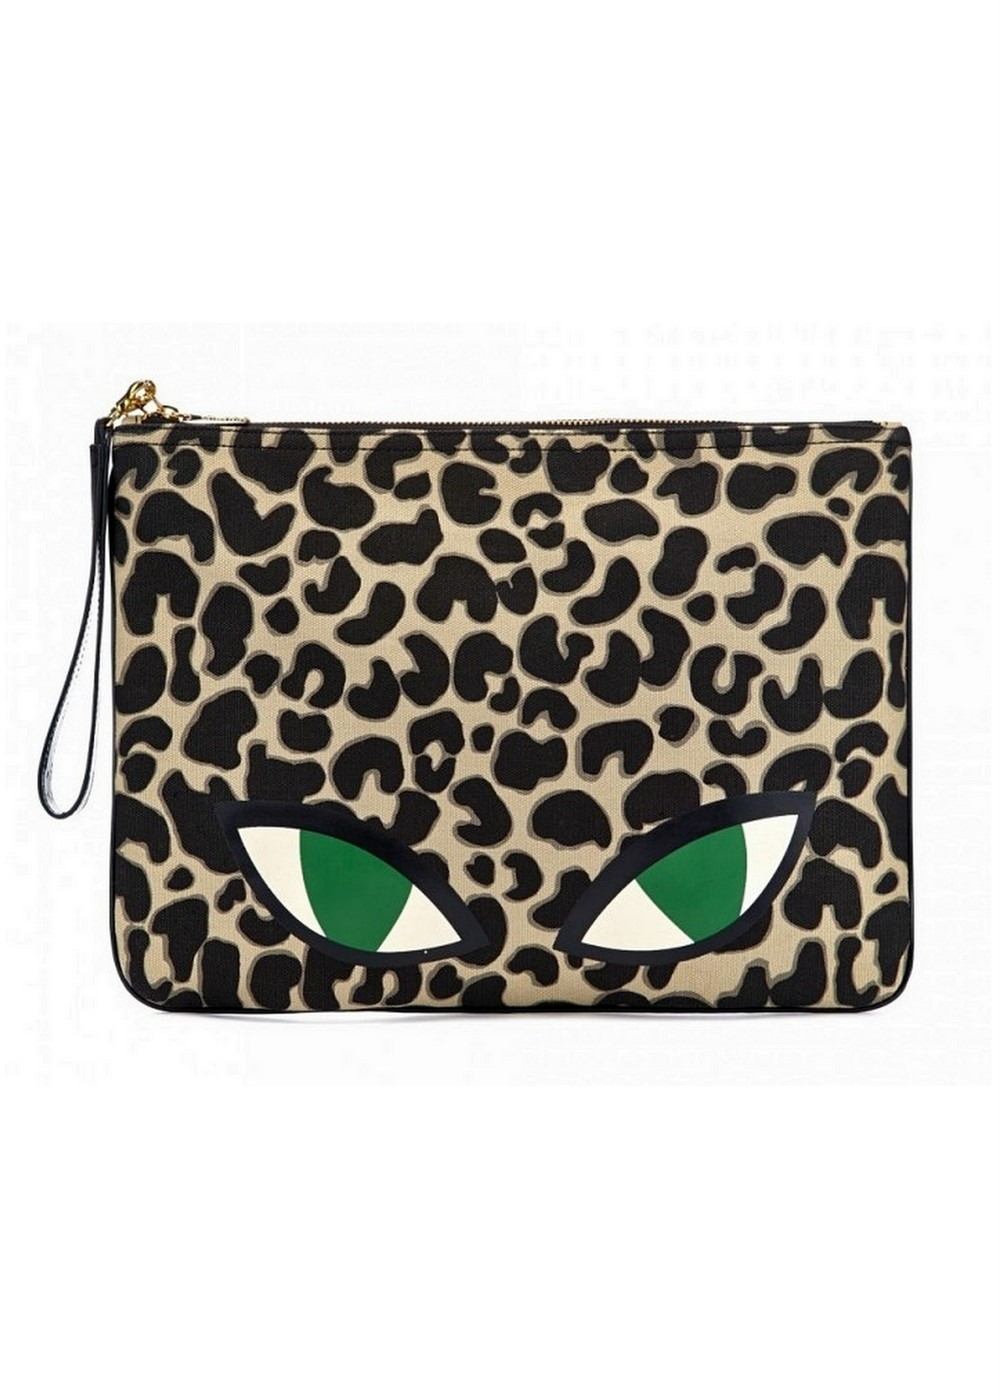 lulu-guinness-wild-cat-hug-and-hold-clutch